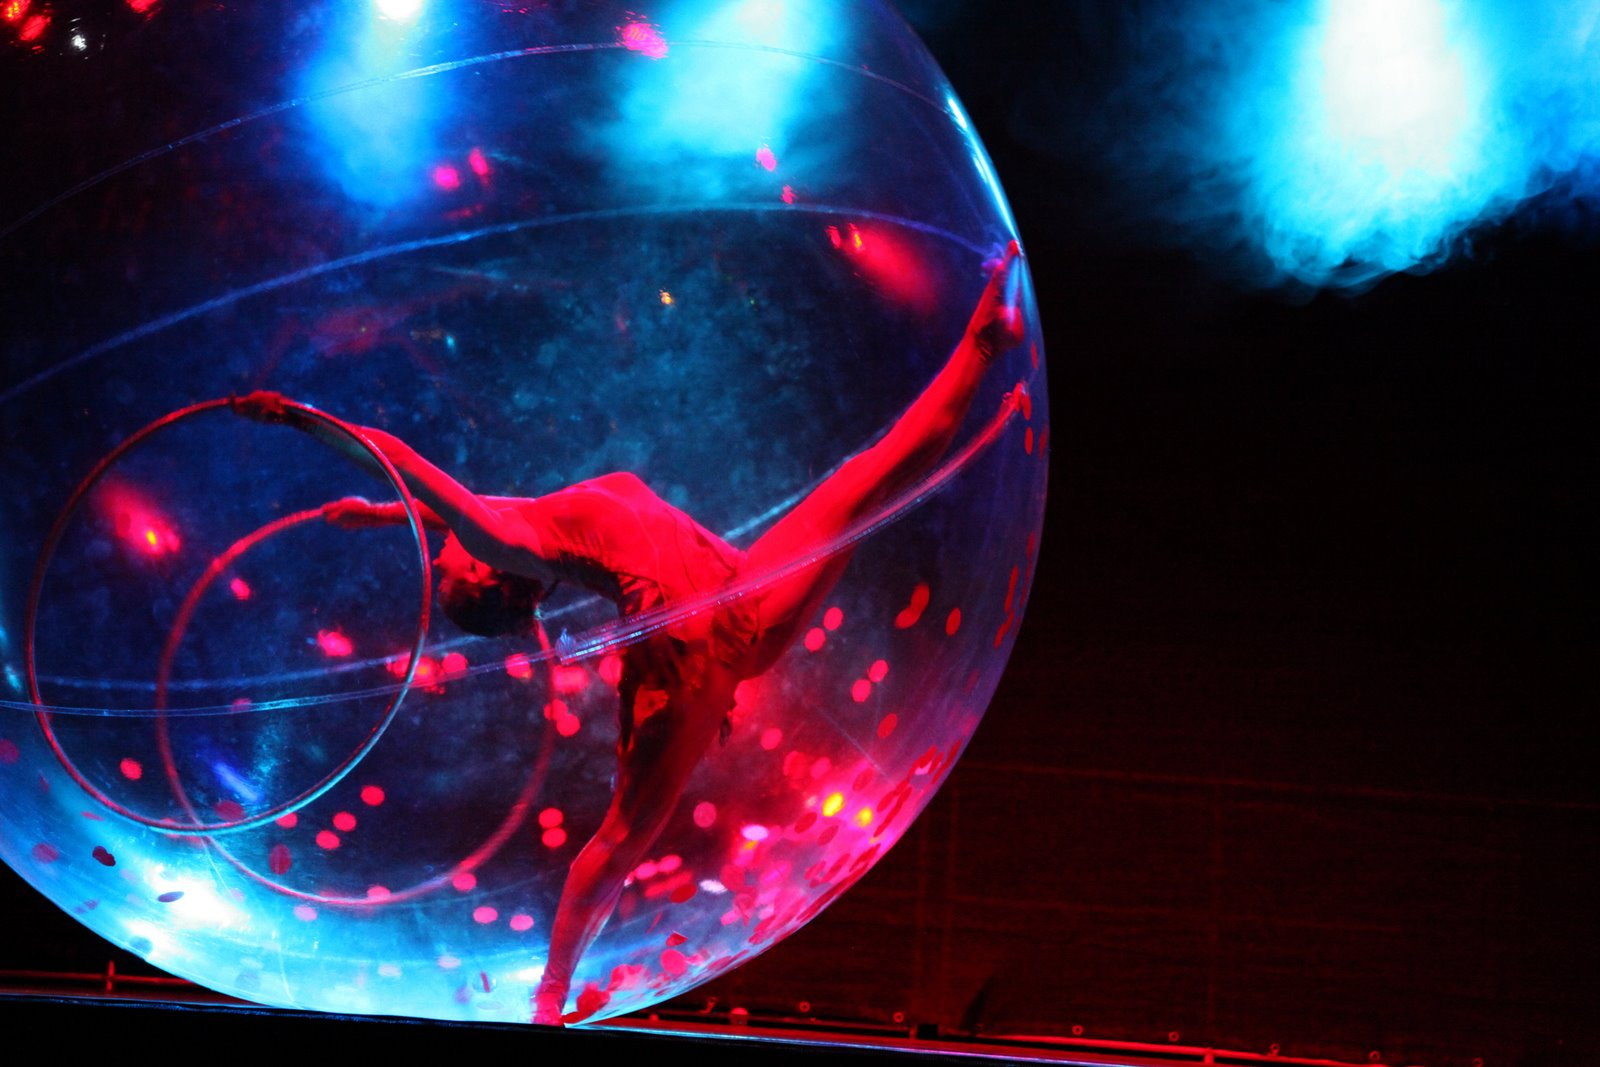 hula-hoop,  dance in transparent spheres